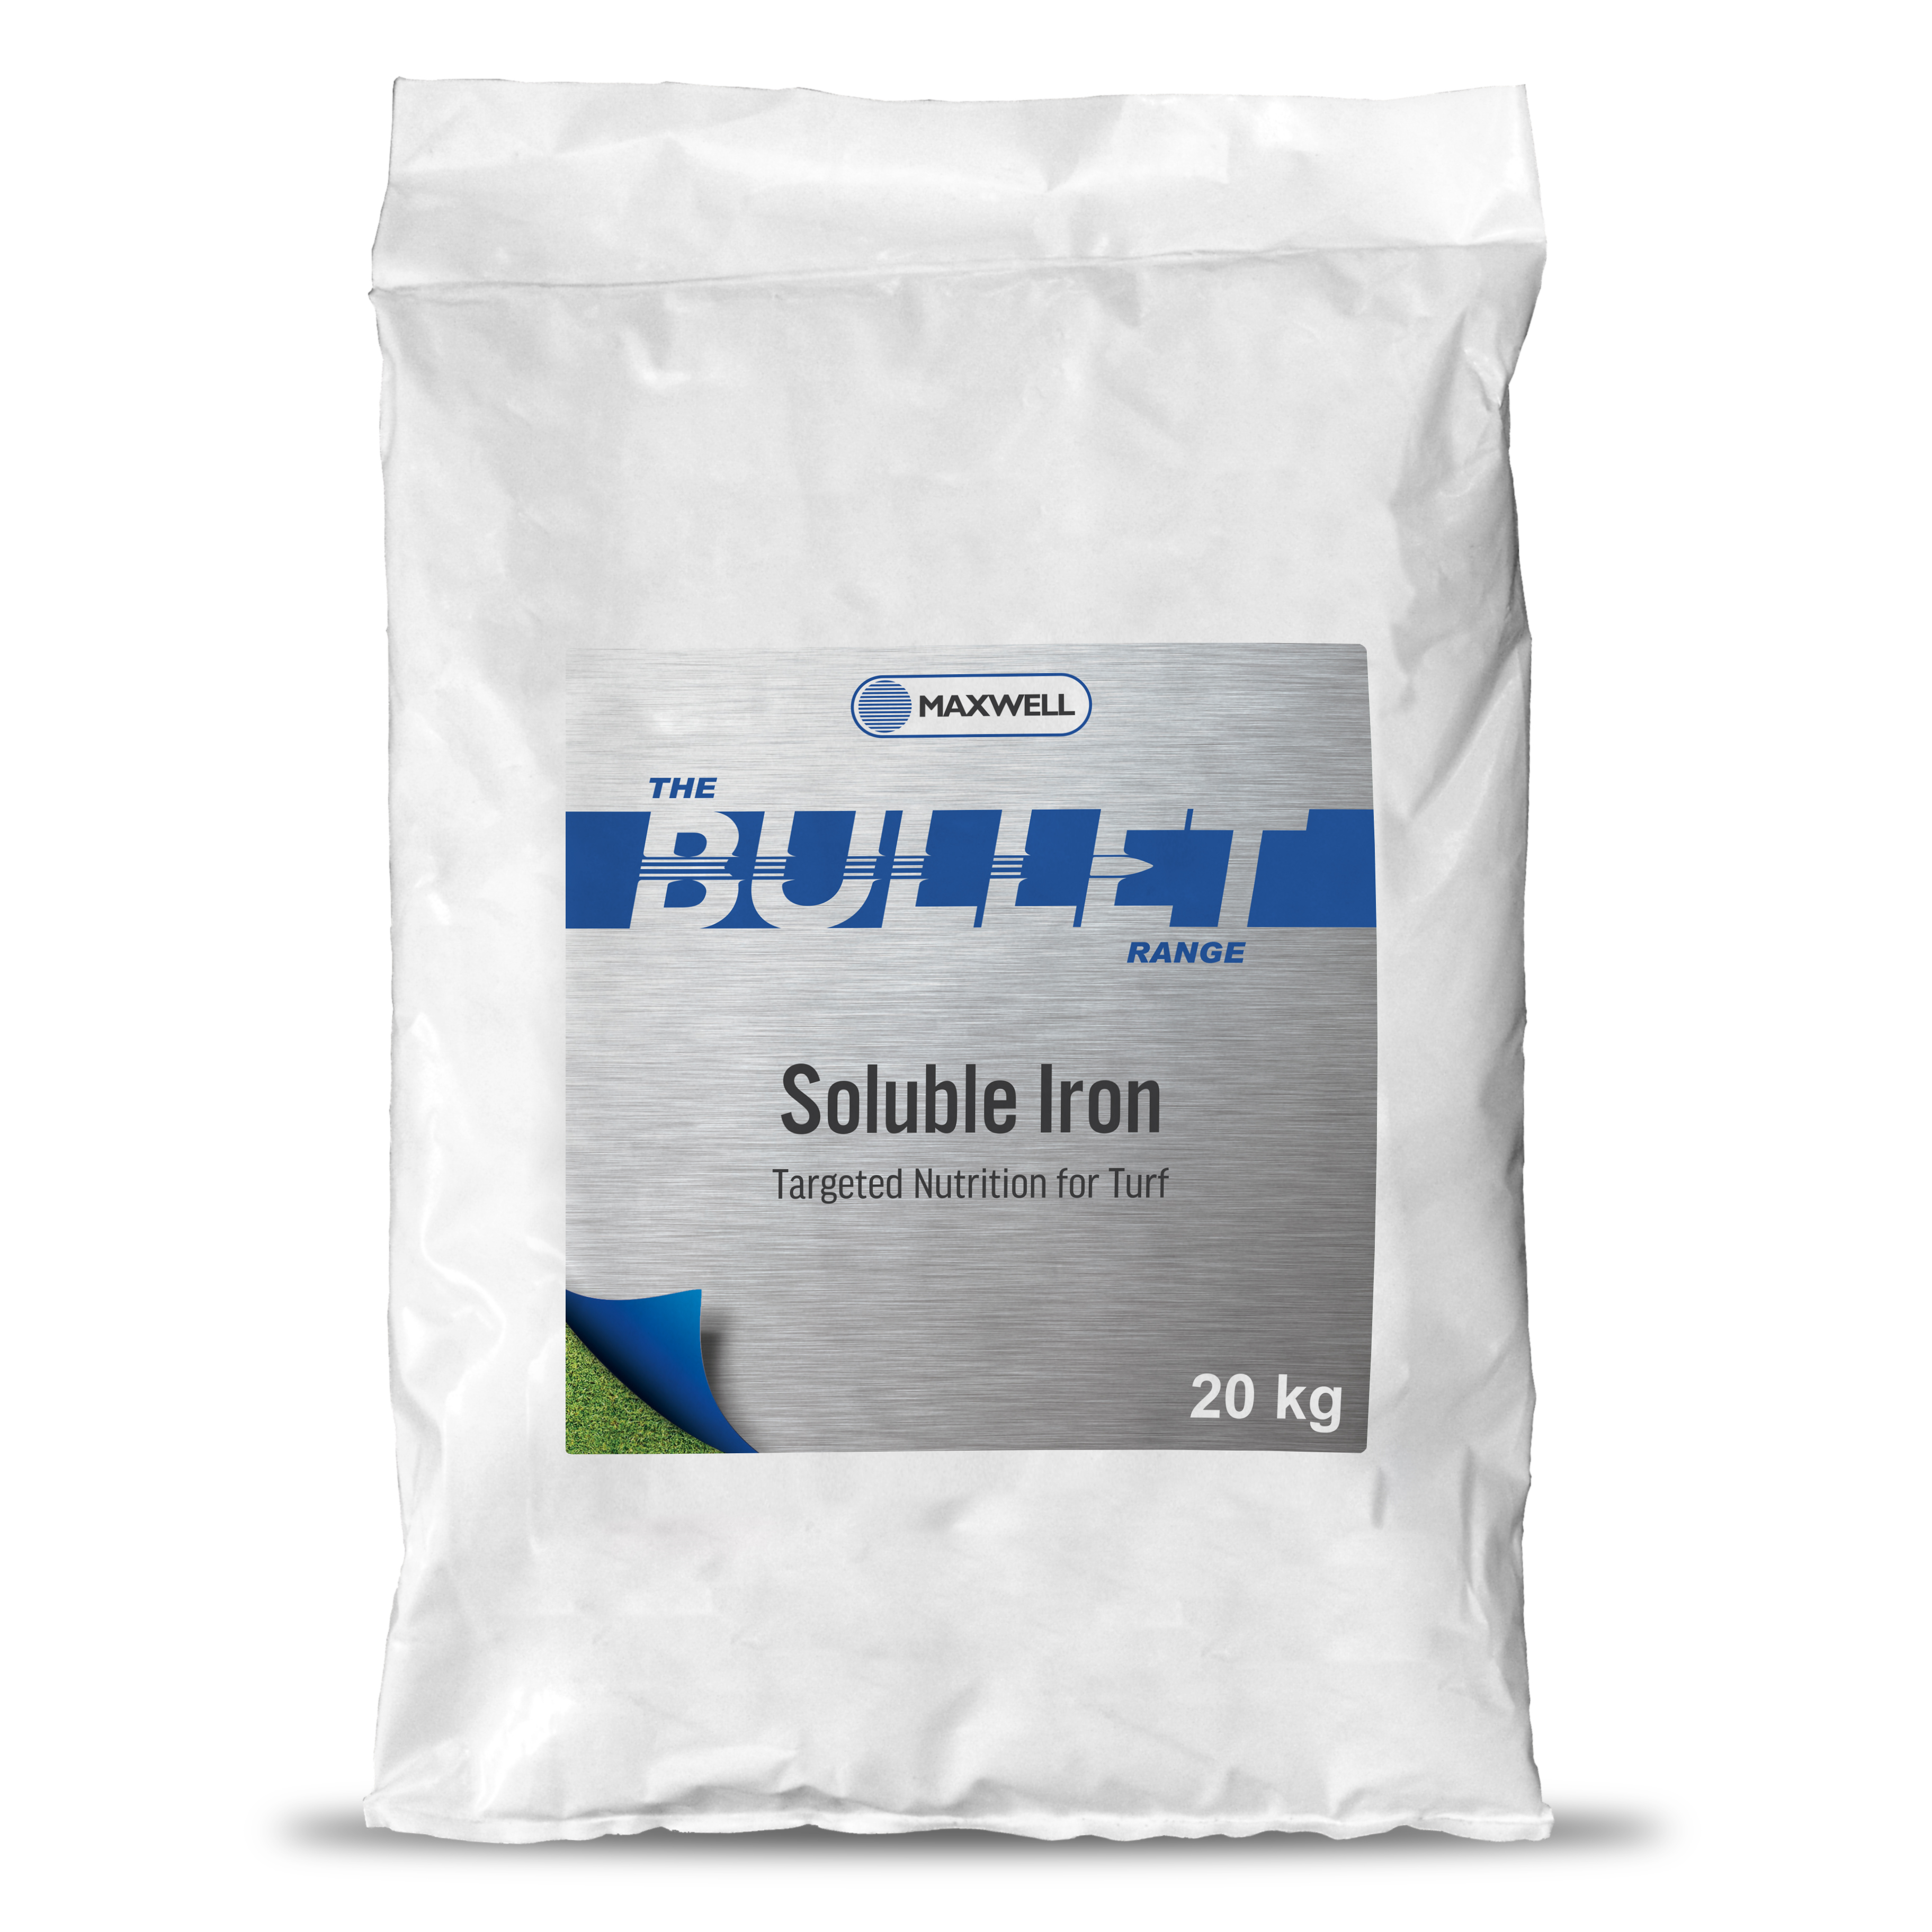 Maxwell Bullet Soluble Iron Soluble Iron Turf Hardeners